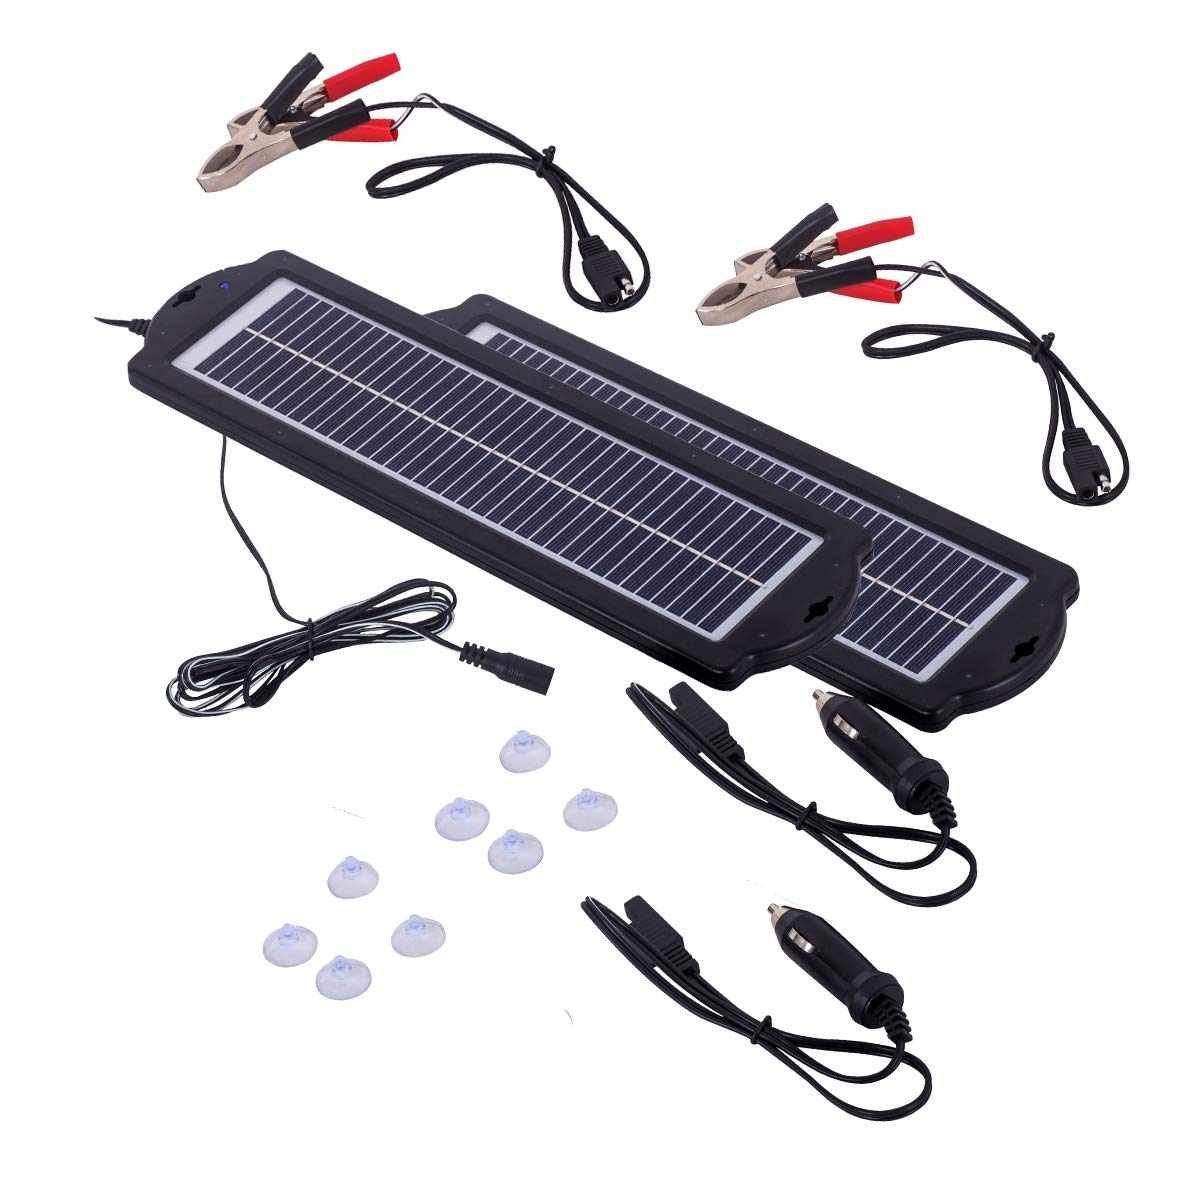 MEGSUN 3W 12V Car Battery Trickle Charger (2 Pairs) Waterproof Portable High Conversion Mono Solar Panel with Cigarette Lighter Plug,Battery Charging Clip Line,Suction Cups for Rv Motorcycle Boat by M MEGSUN